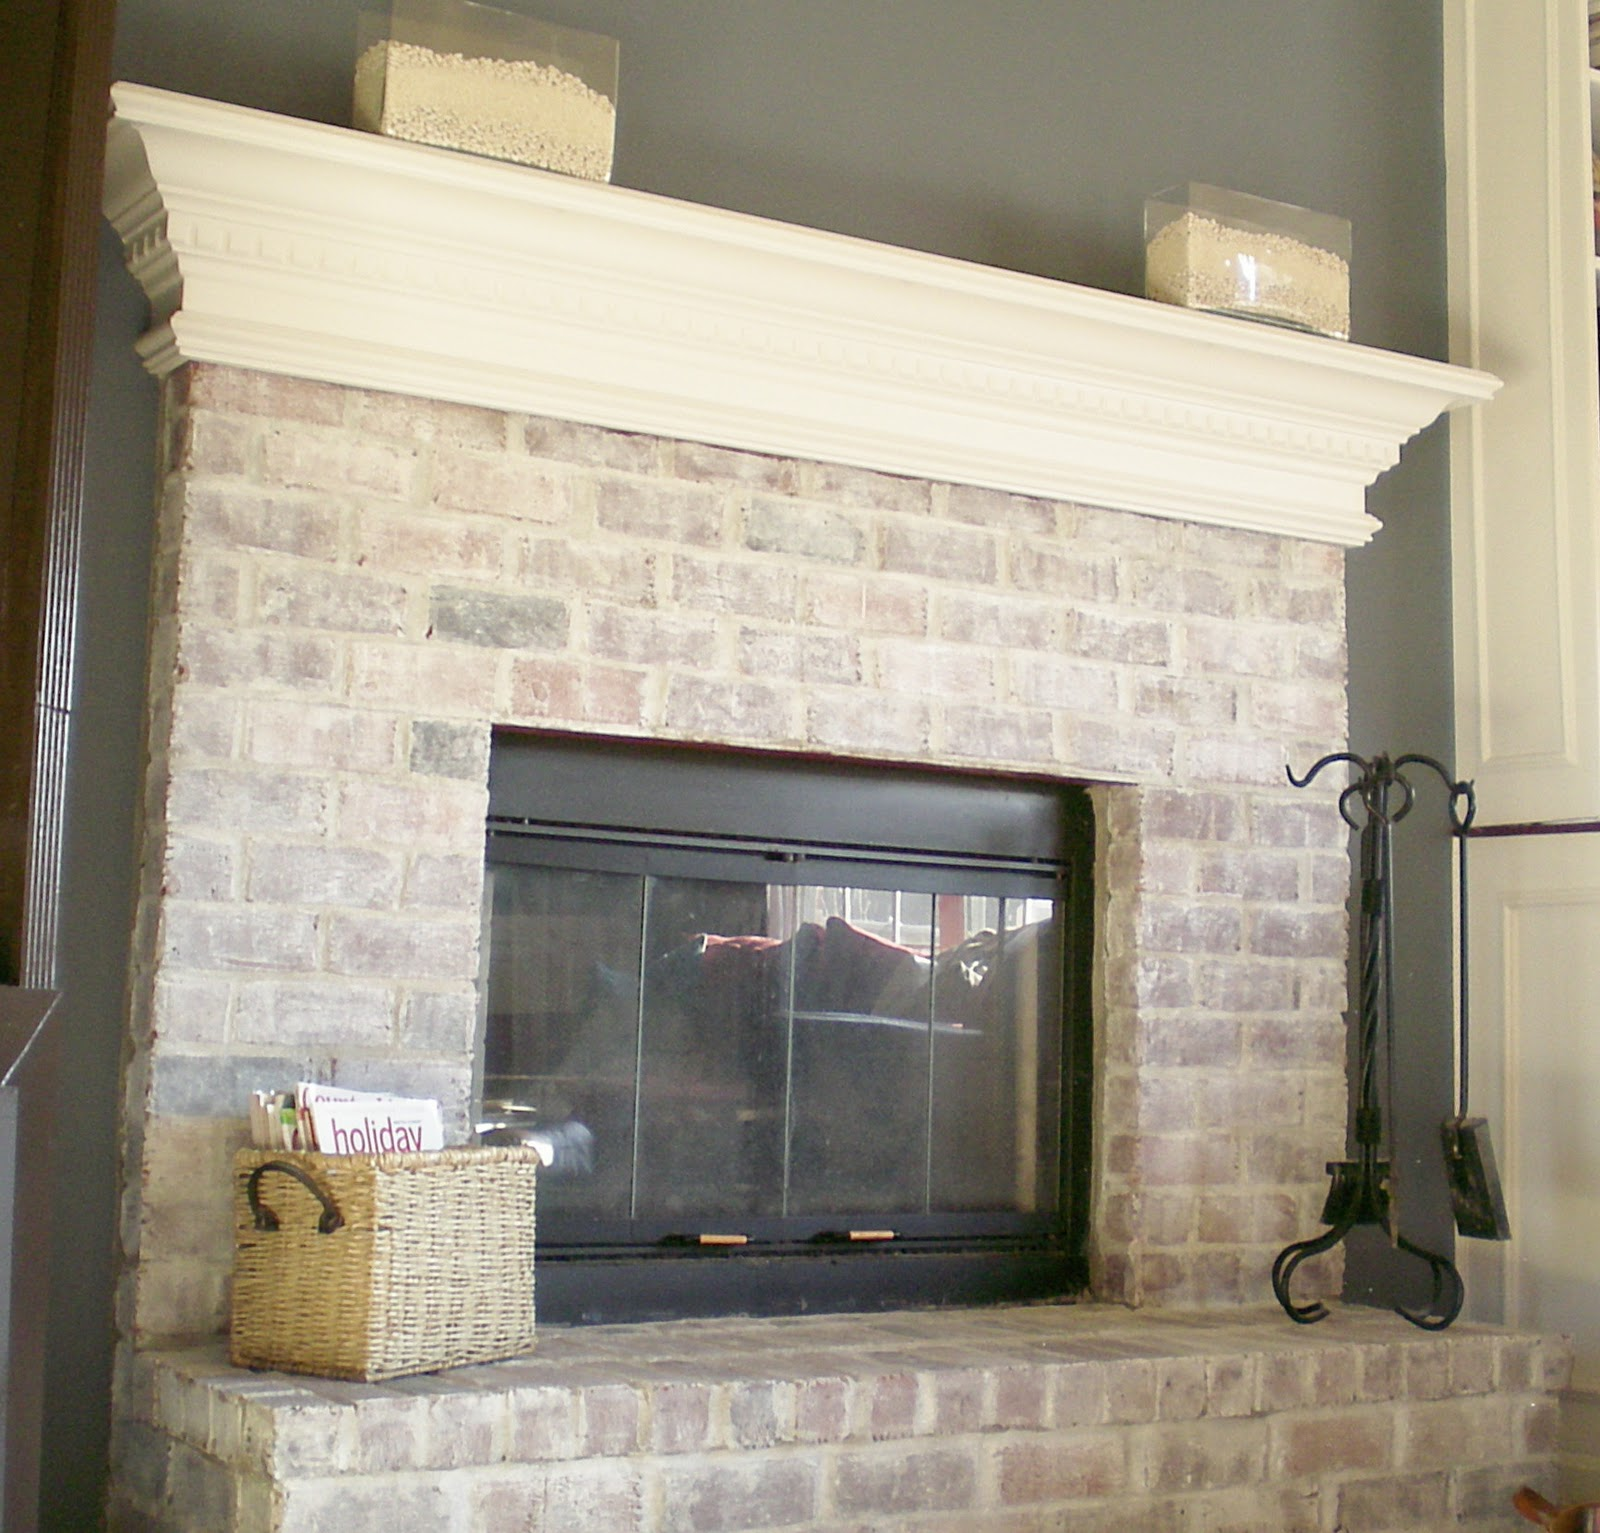 7 Steps To Whitewashing Your Brick Fireplace